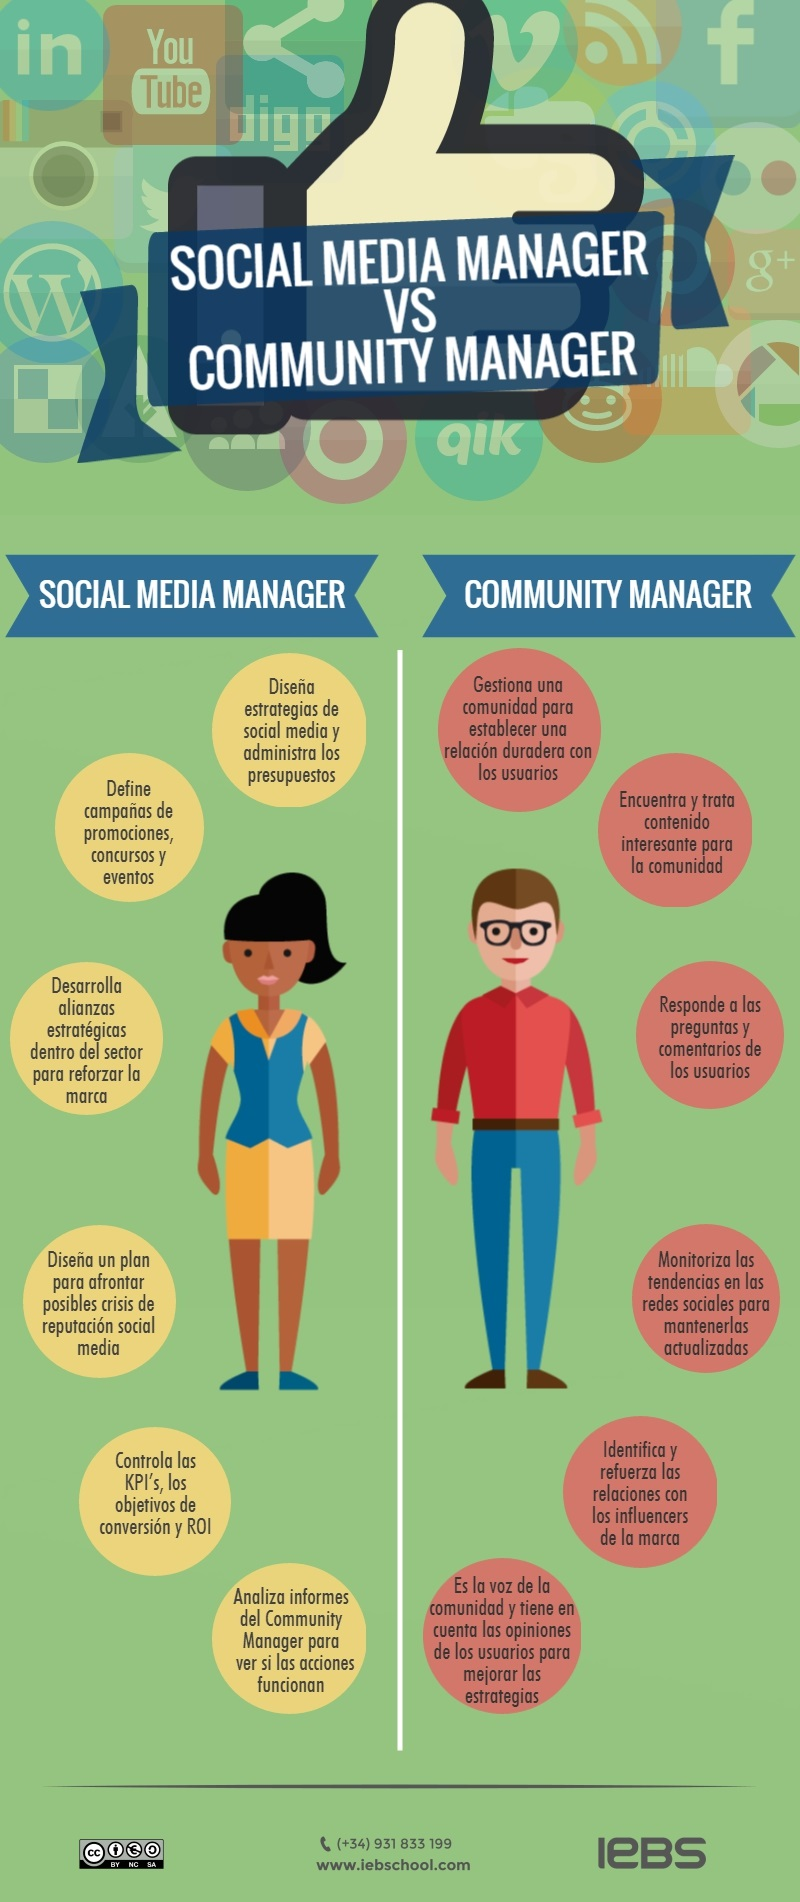 Social-Media-Manager-VS-Community-Manager